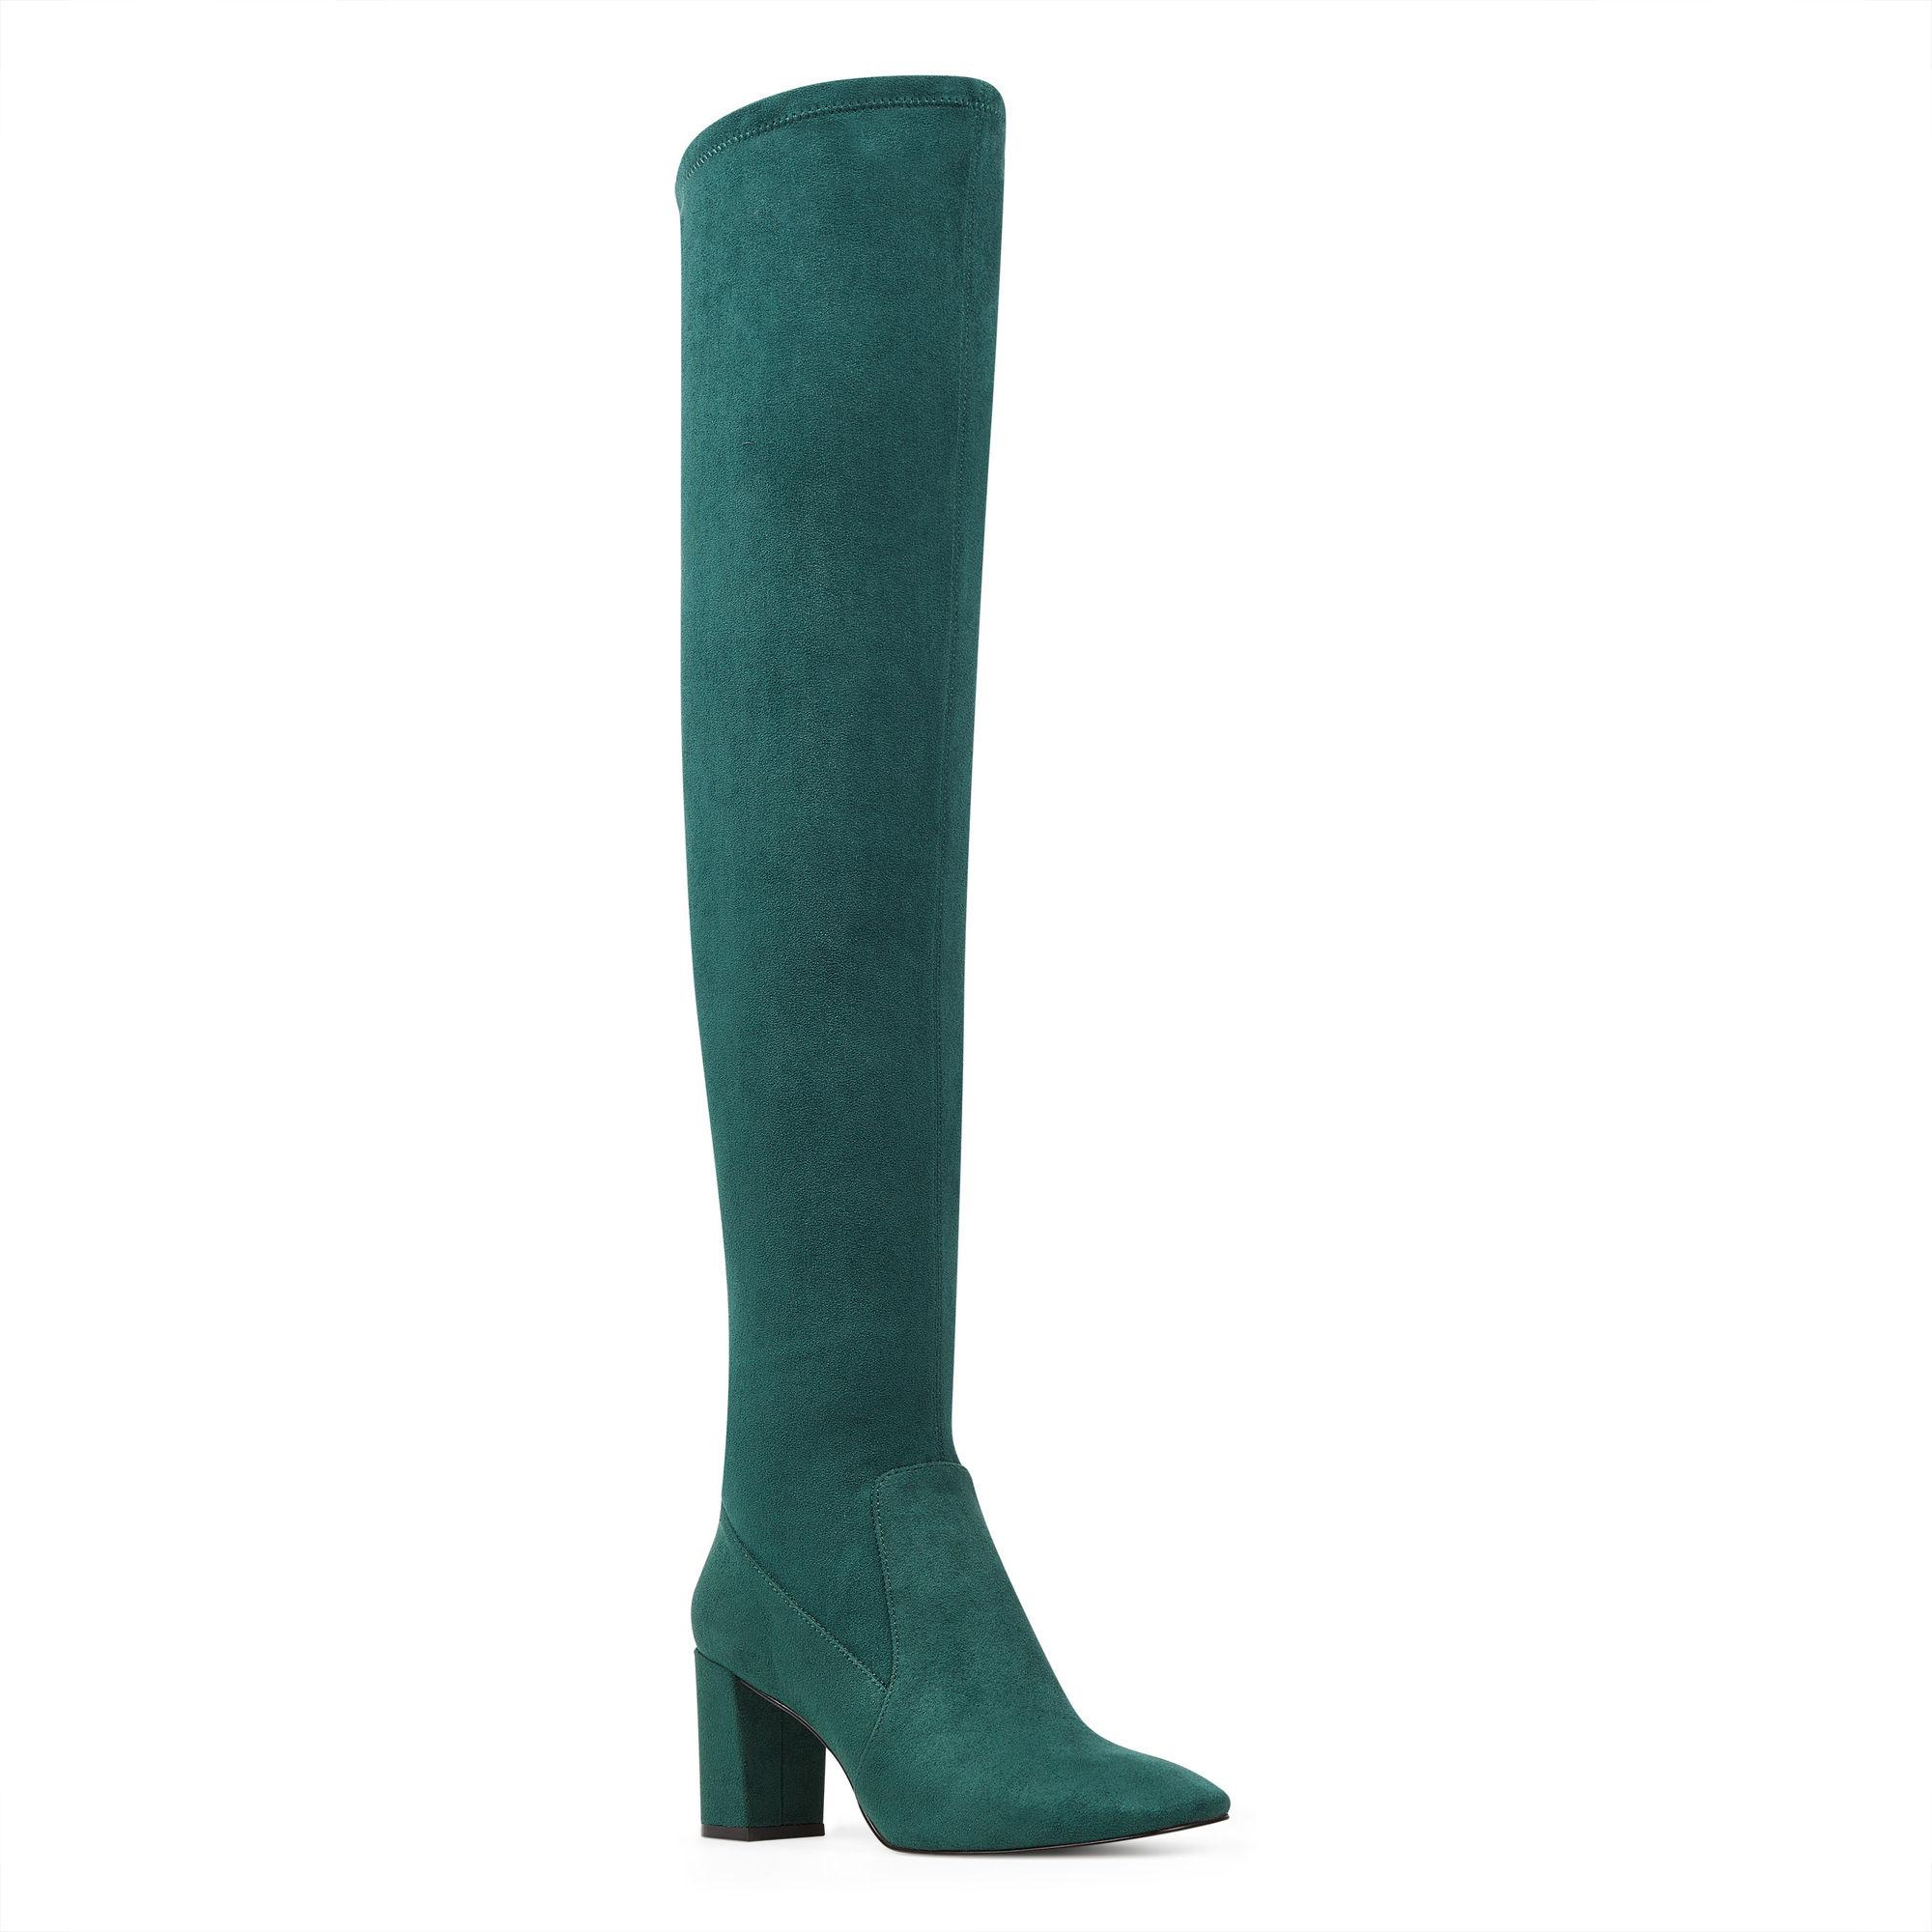 37a8039b7a0 Lyst - Nine West Xperian Over The Knee Boot in Green